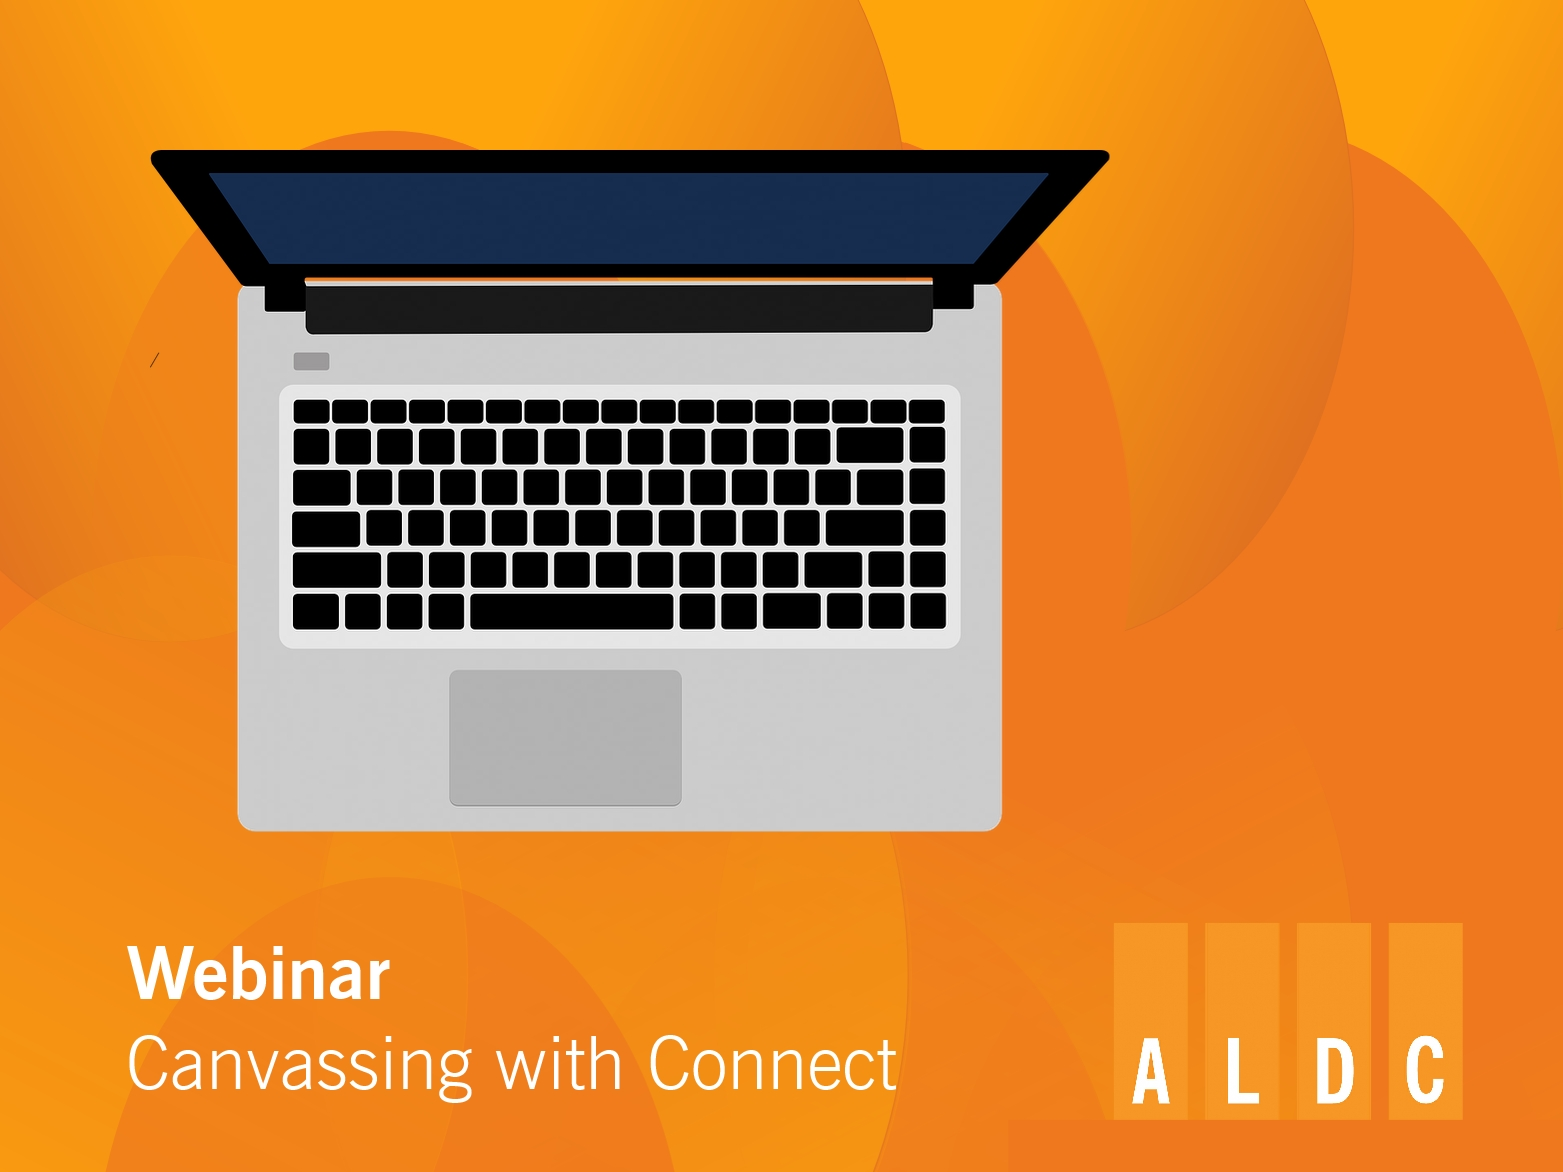 WEBINAR: Canvassing with Connect, 22 July